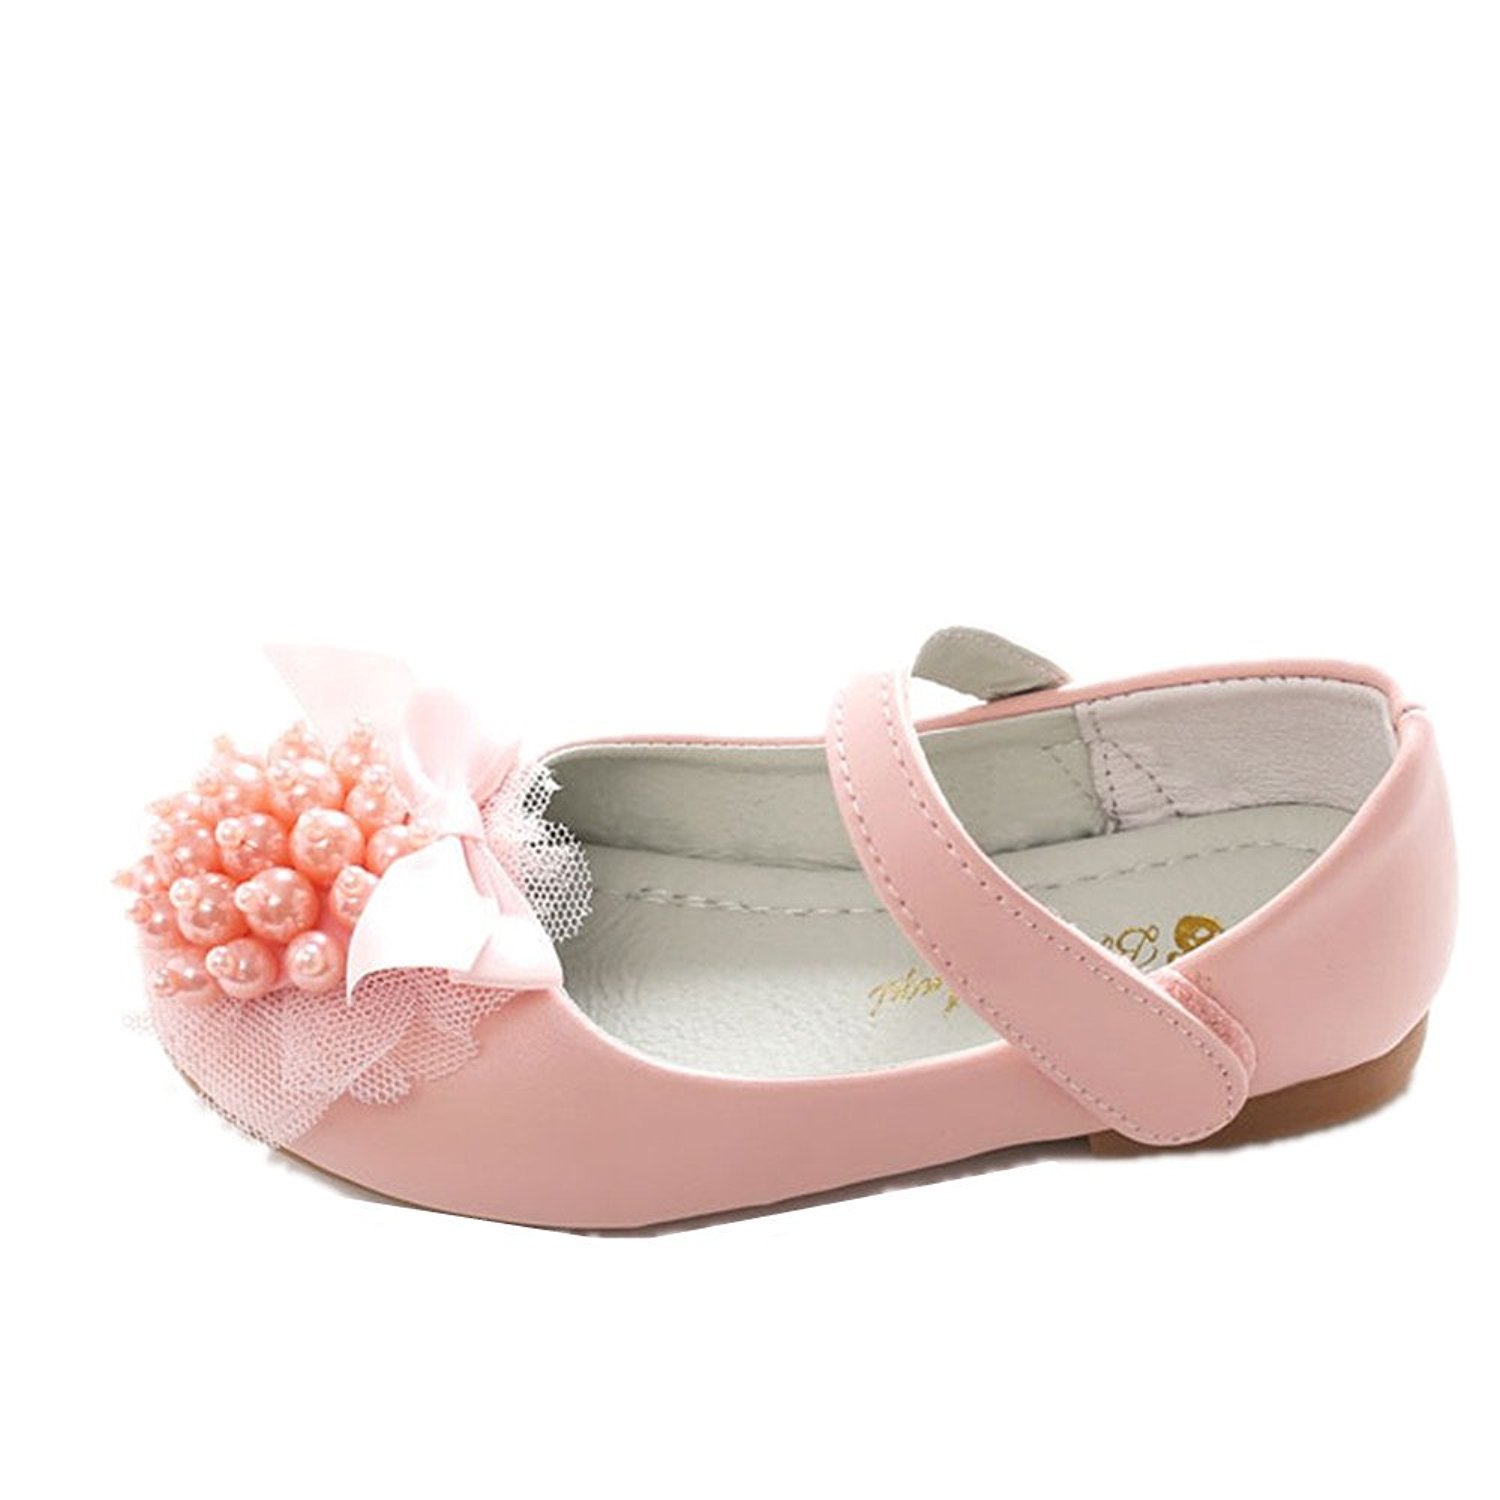 pit4tk Kids Flats For Girls Shoes Sweet Girl Flower Leather Flat Shoes Princess Shoes For Children Flat Shoes